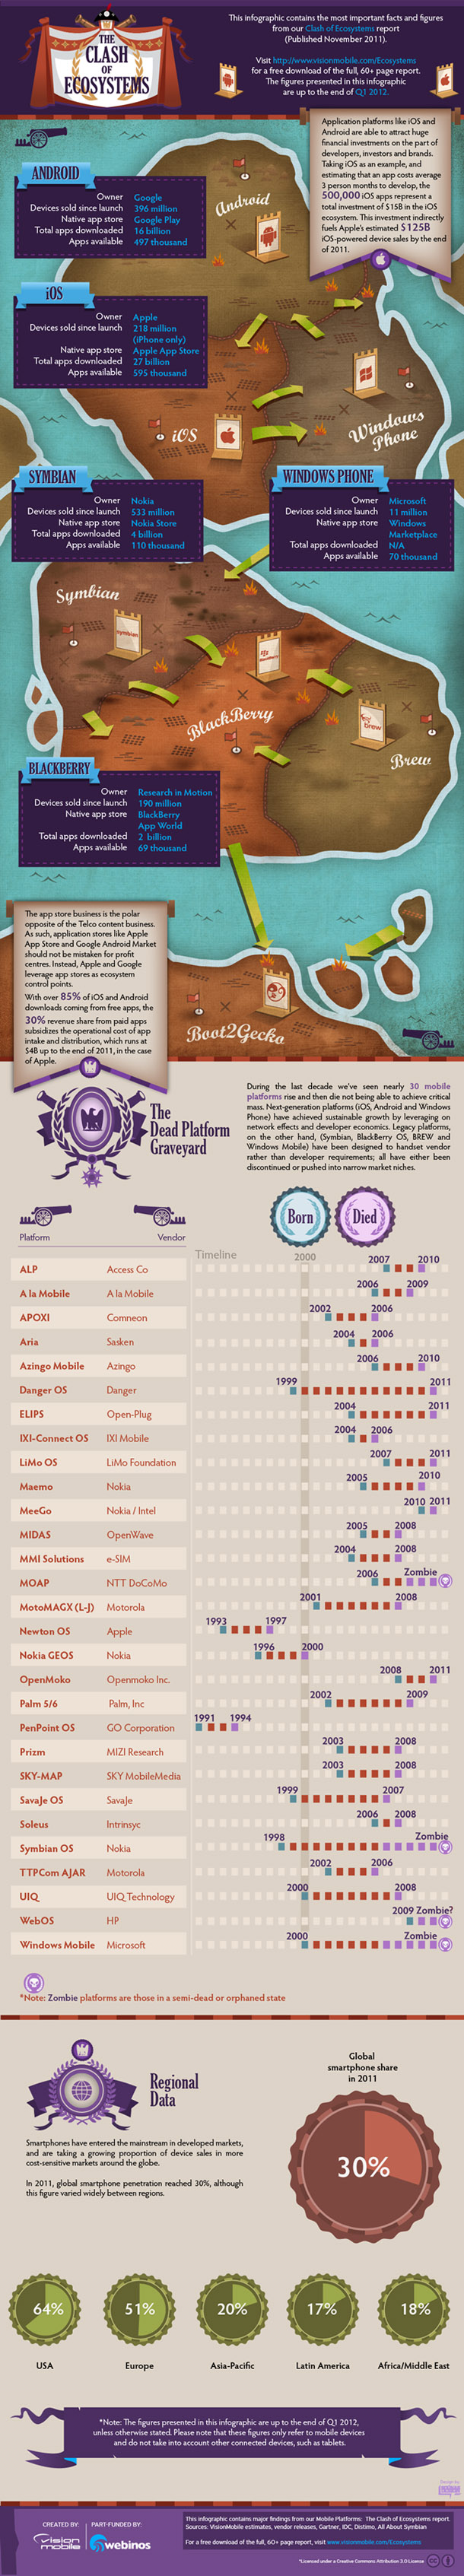 Clash Of mobile platforms-infographic